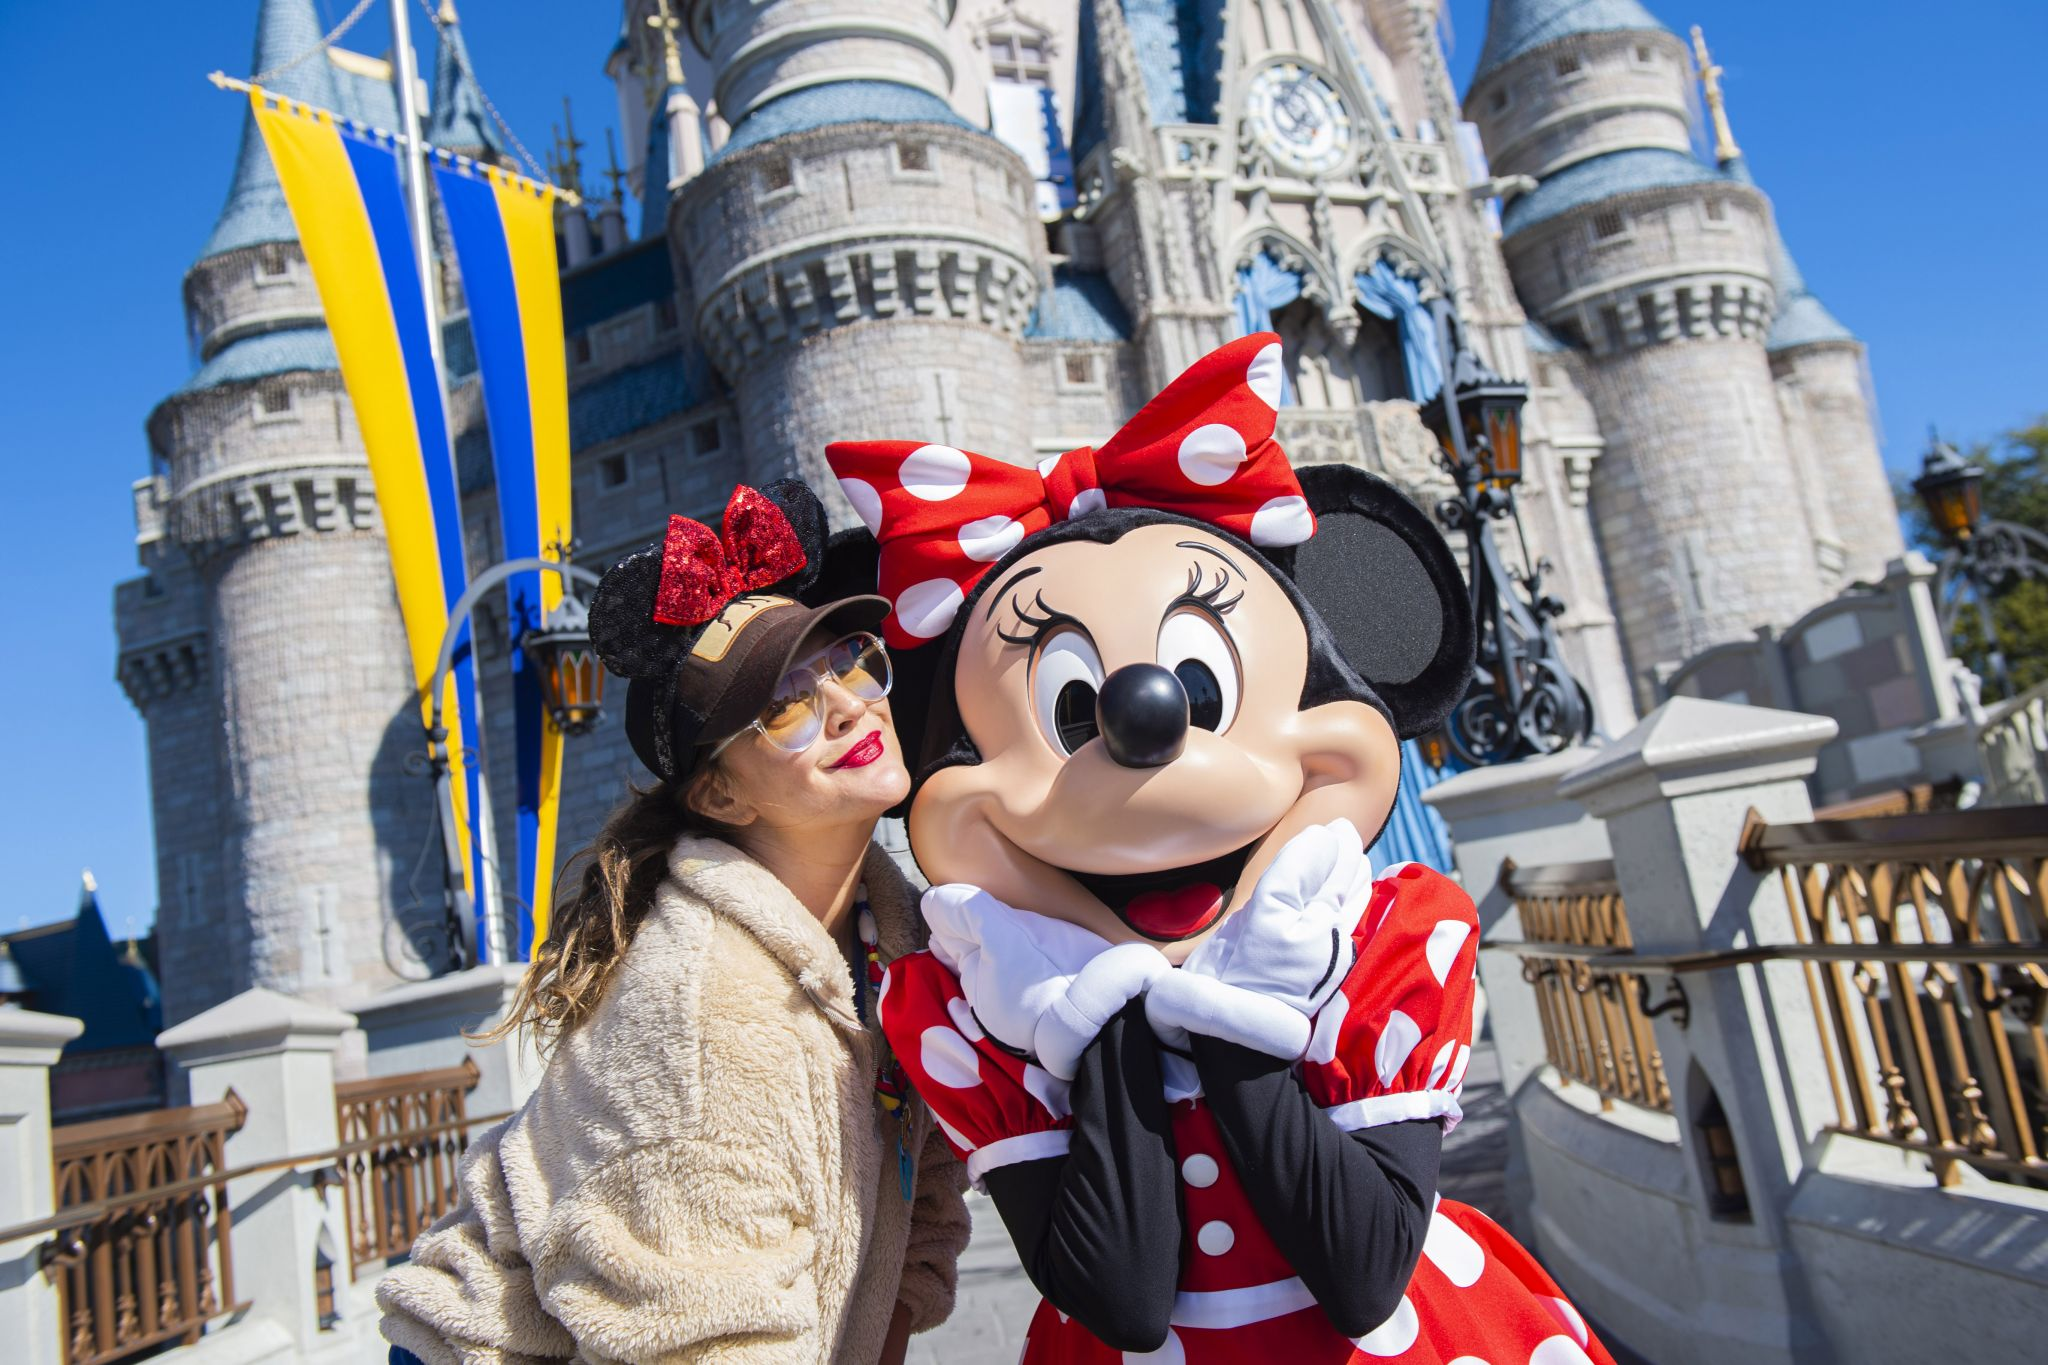 Disney World welcomes you 'home' with an unsettling new ad